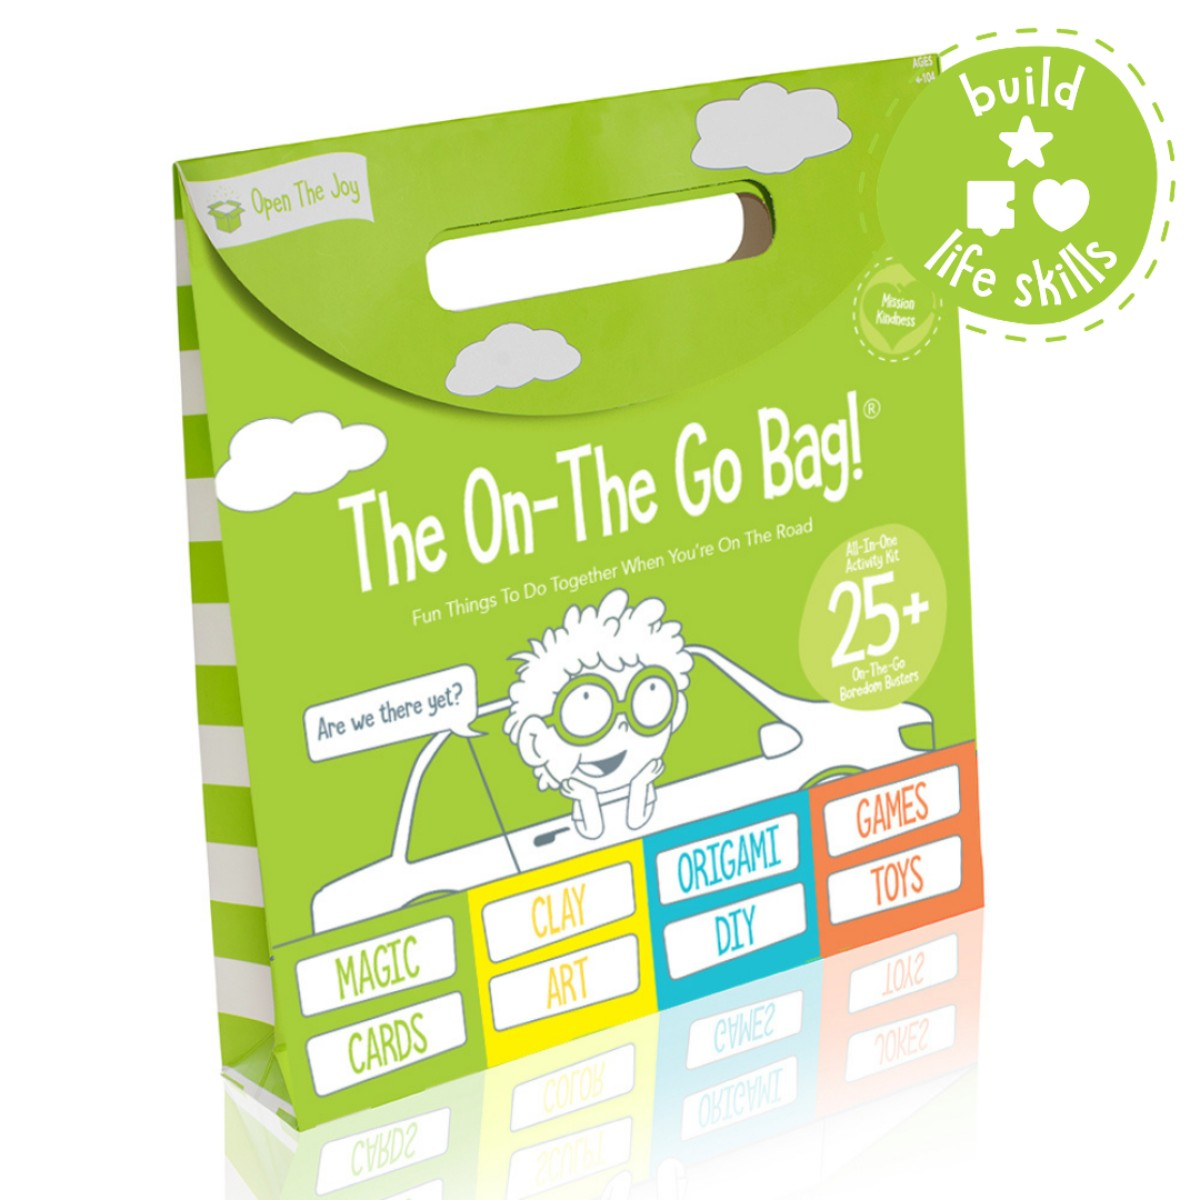 On the Go Bag: All-in-One Activity Kit